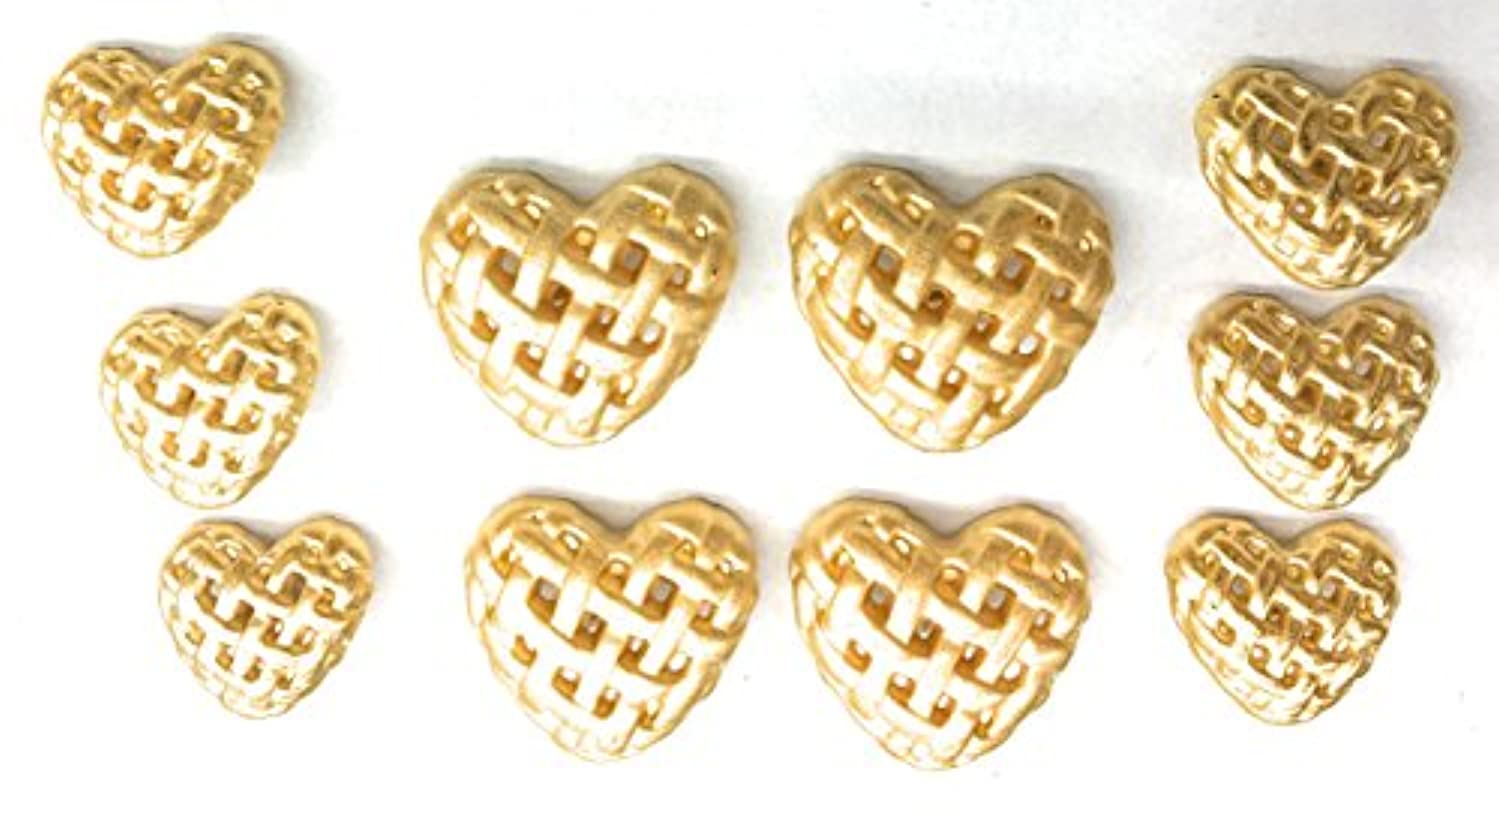 Gold Designer Heart Shape Buttons Sets for Suit & Blazers 10 Pc. (13) elmhmreerrxtty